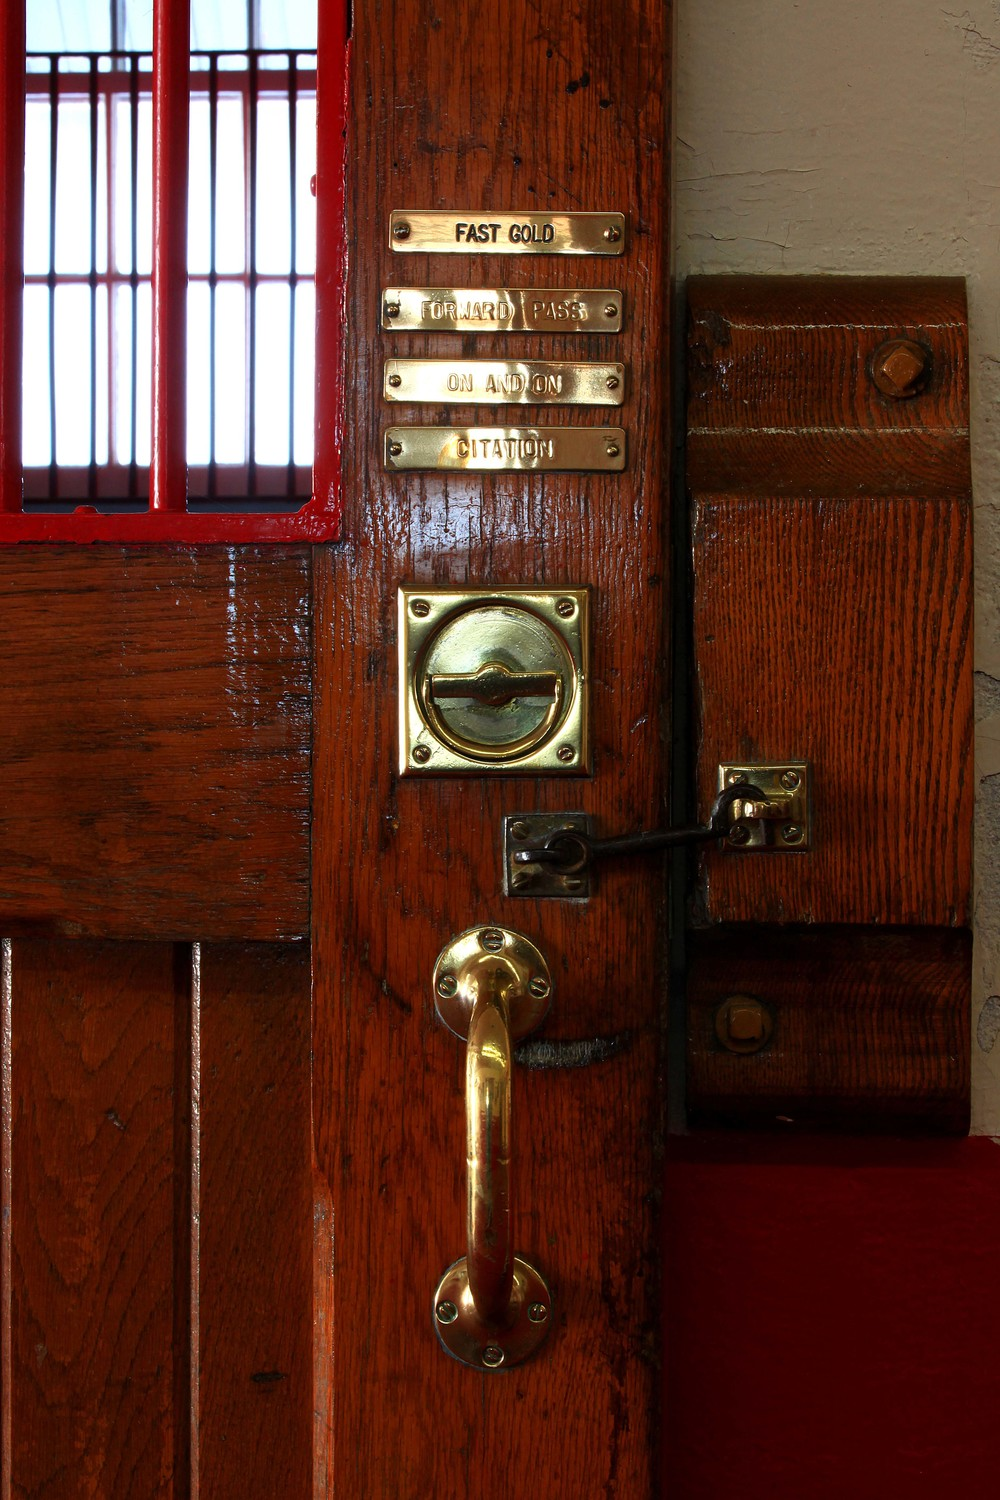 IMG_2814 - Citation's Stall Door.jpg